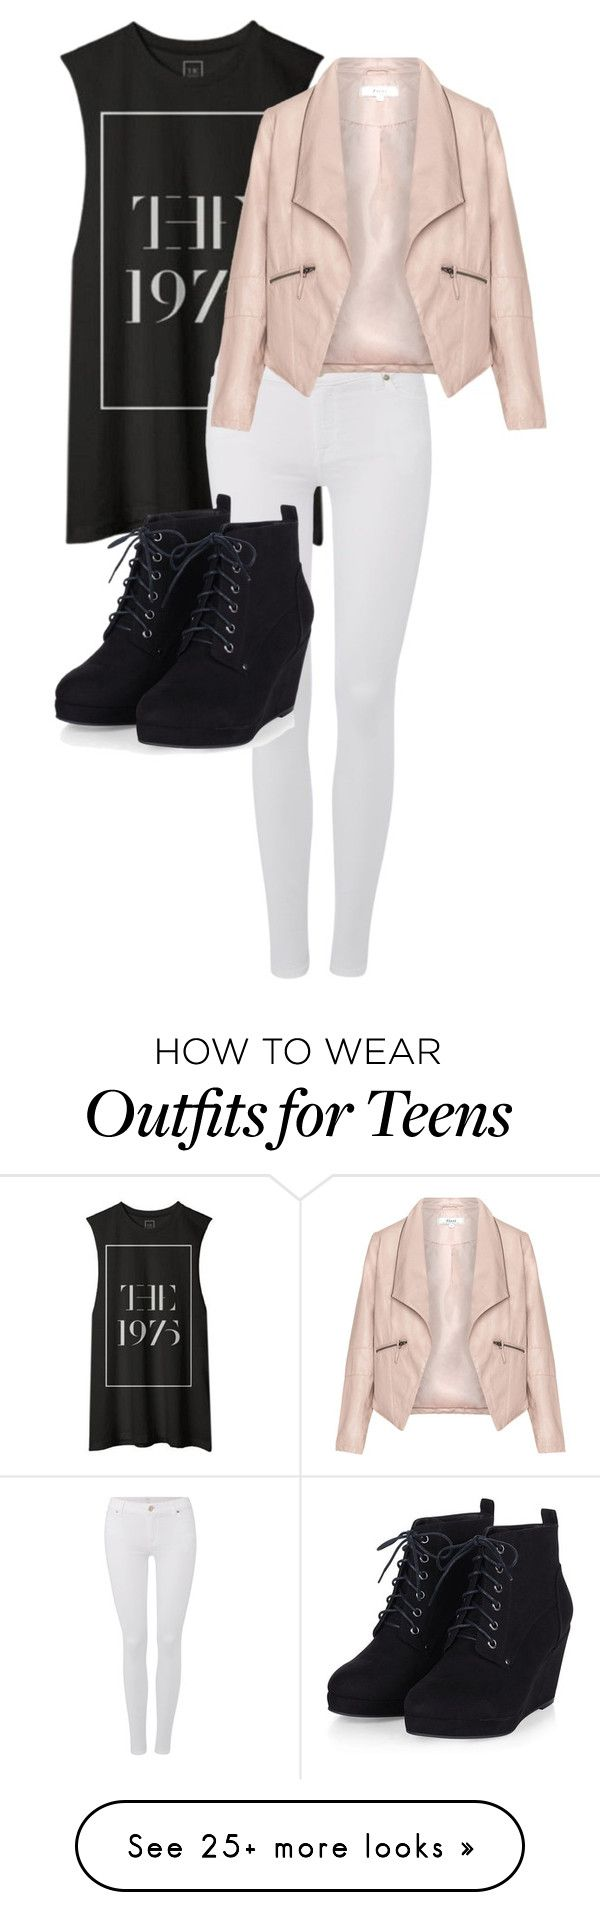 """""""Untitled #107"""" by lbrownmonson on Polyvore featuring 7 For All Mankind, Zizzi, women's clothing, women, female, woman, misses and juniors"""